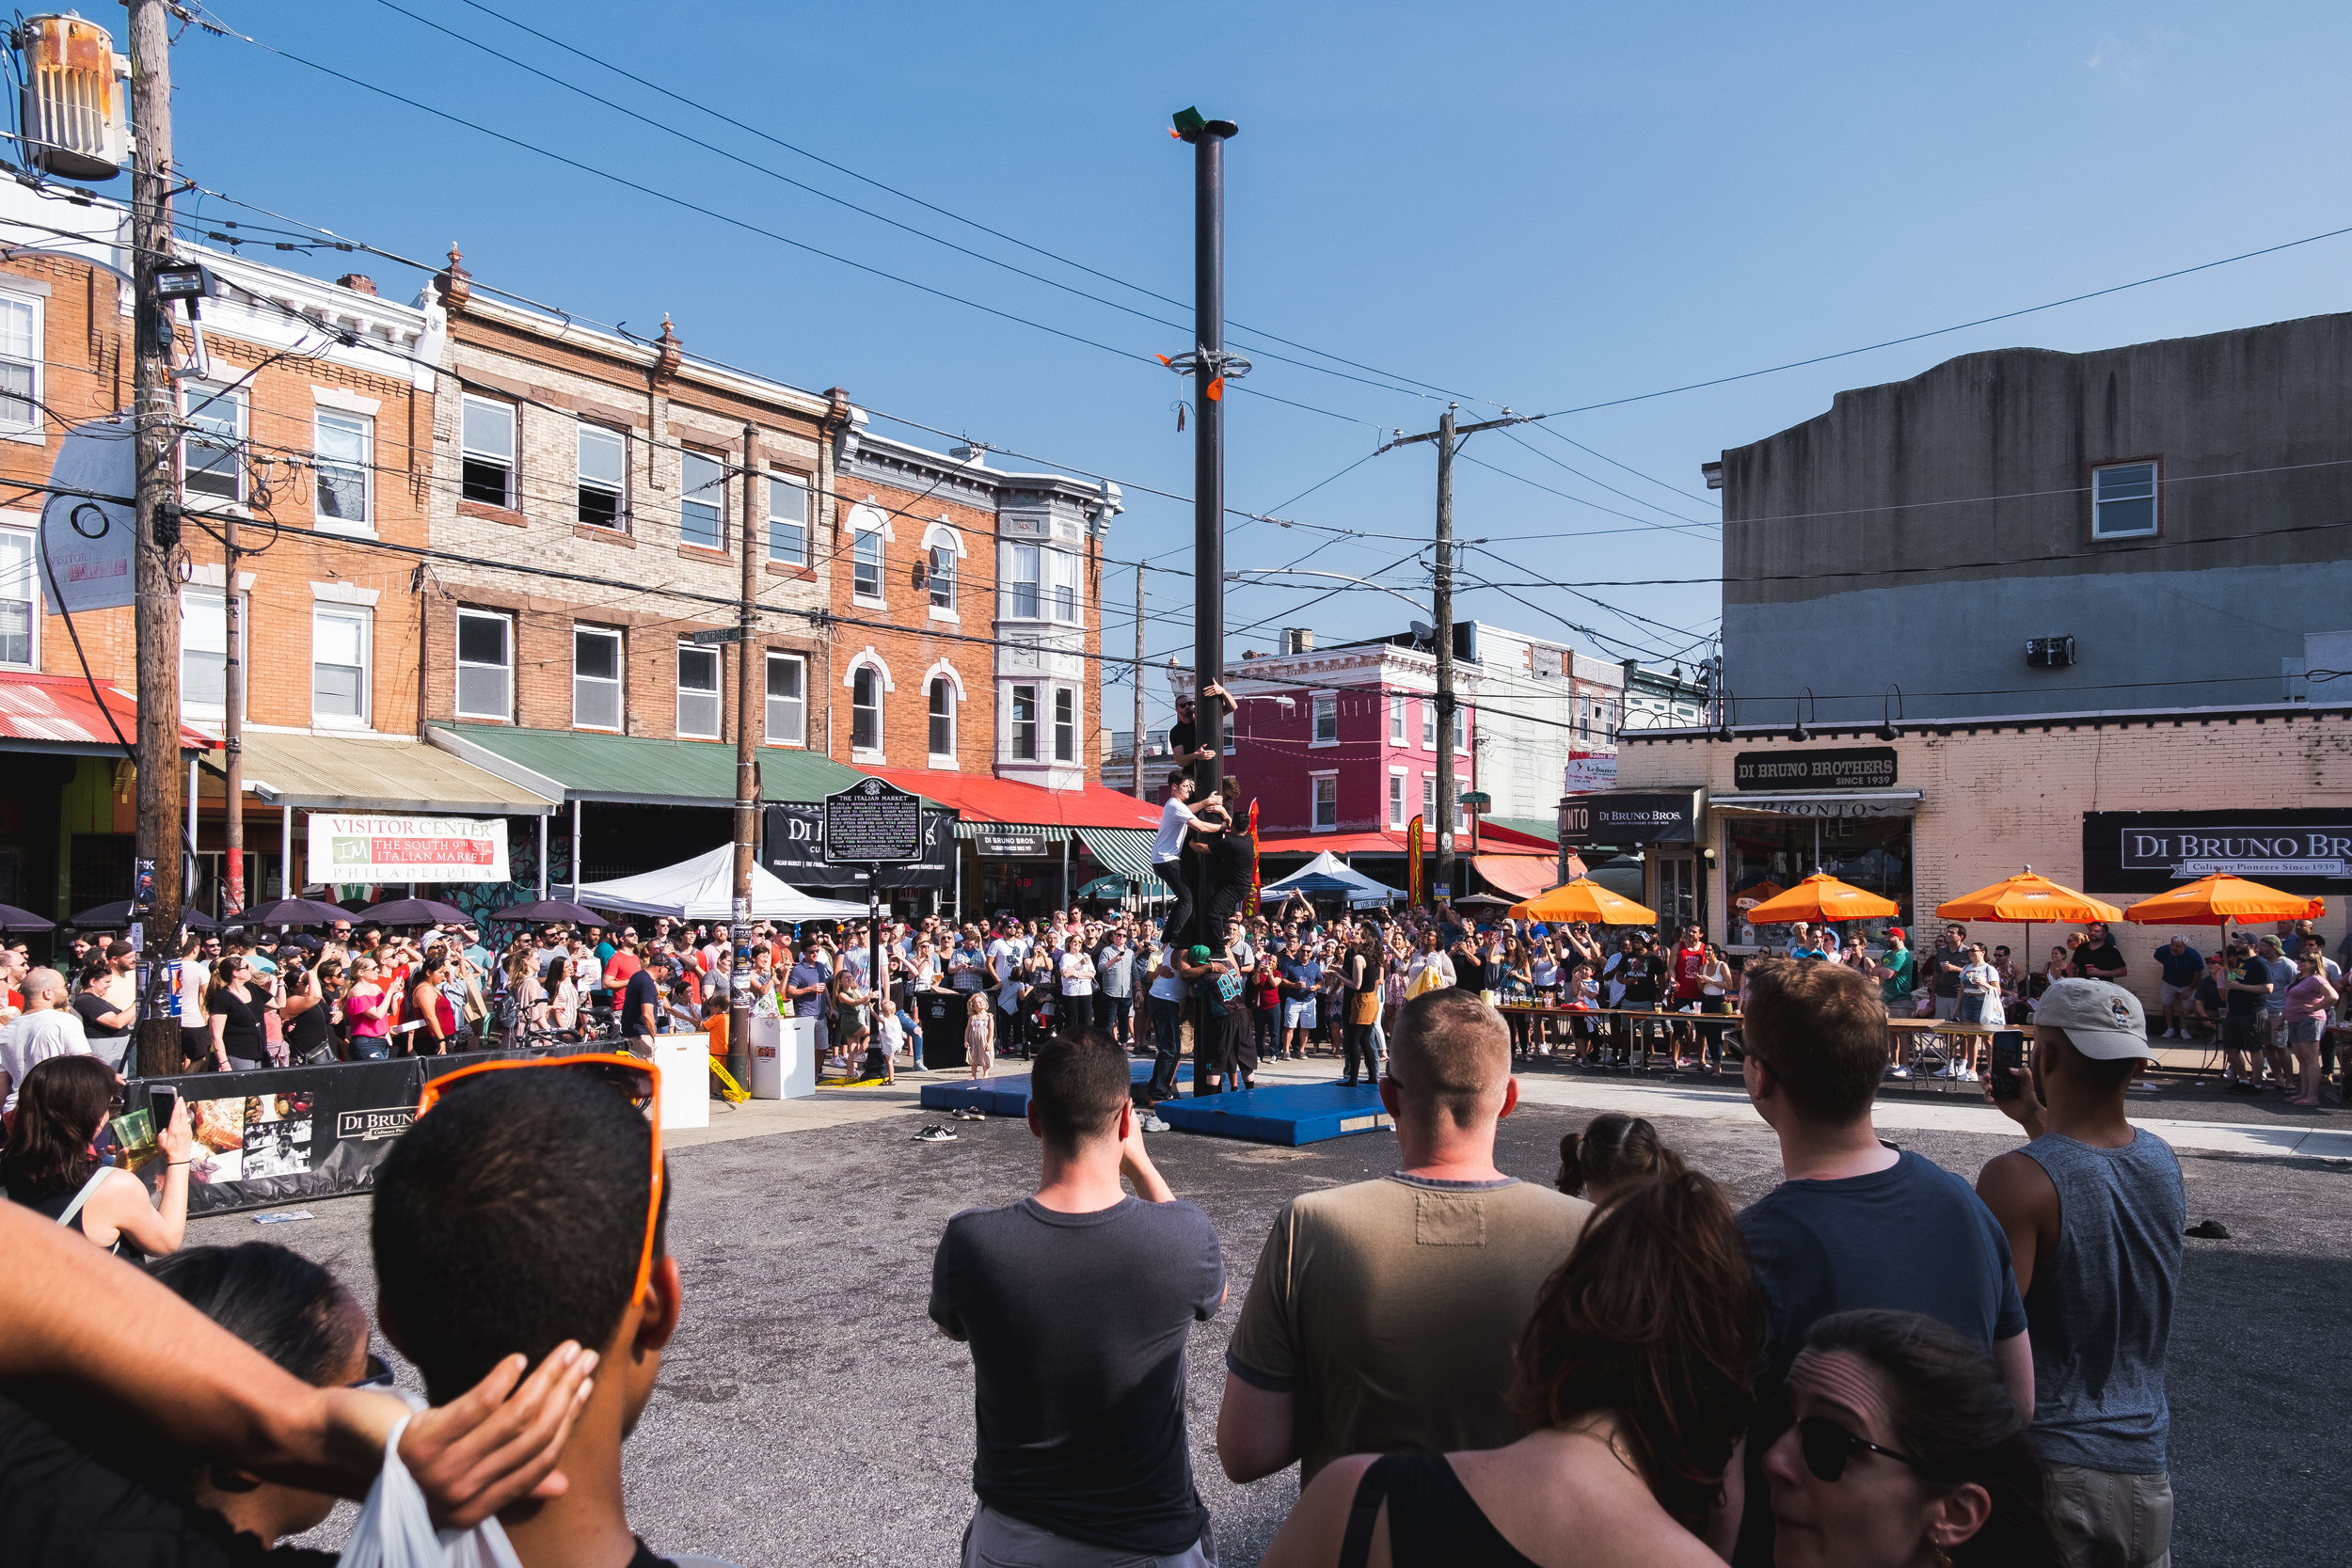 2019_ITALIAN MARKET FEST_EVENTS_THE PHILLY CHECKLIST-7.jpg